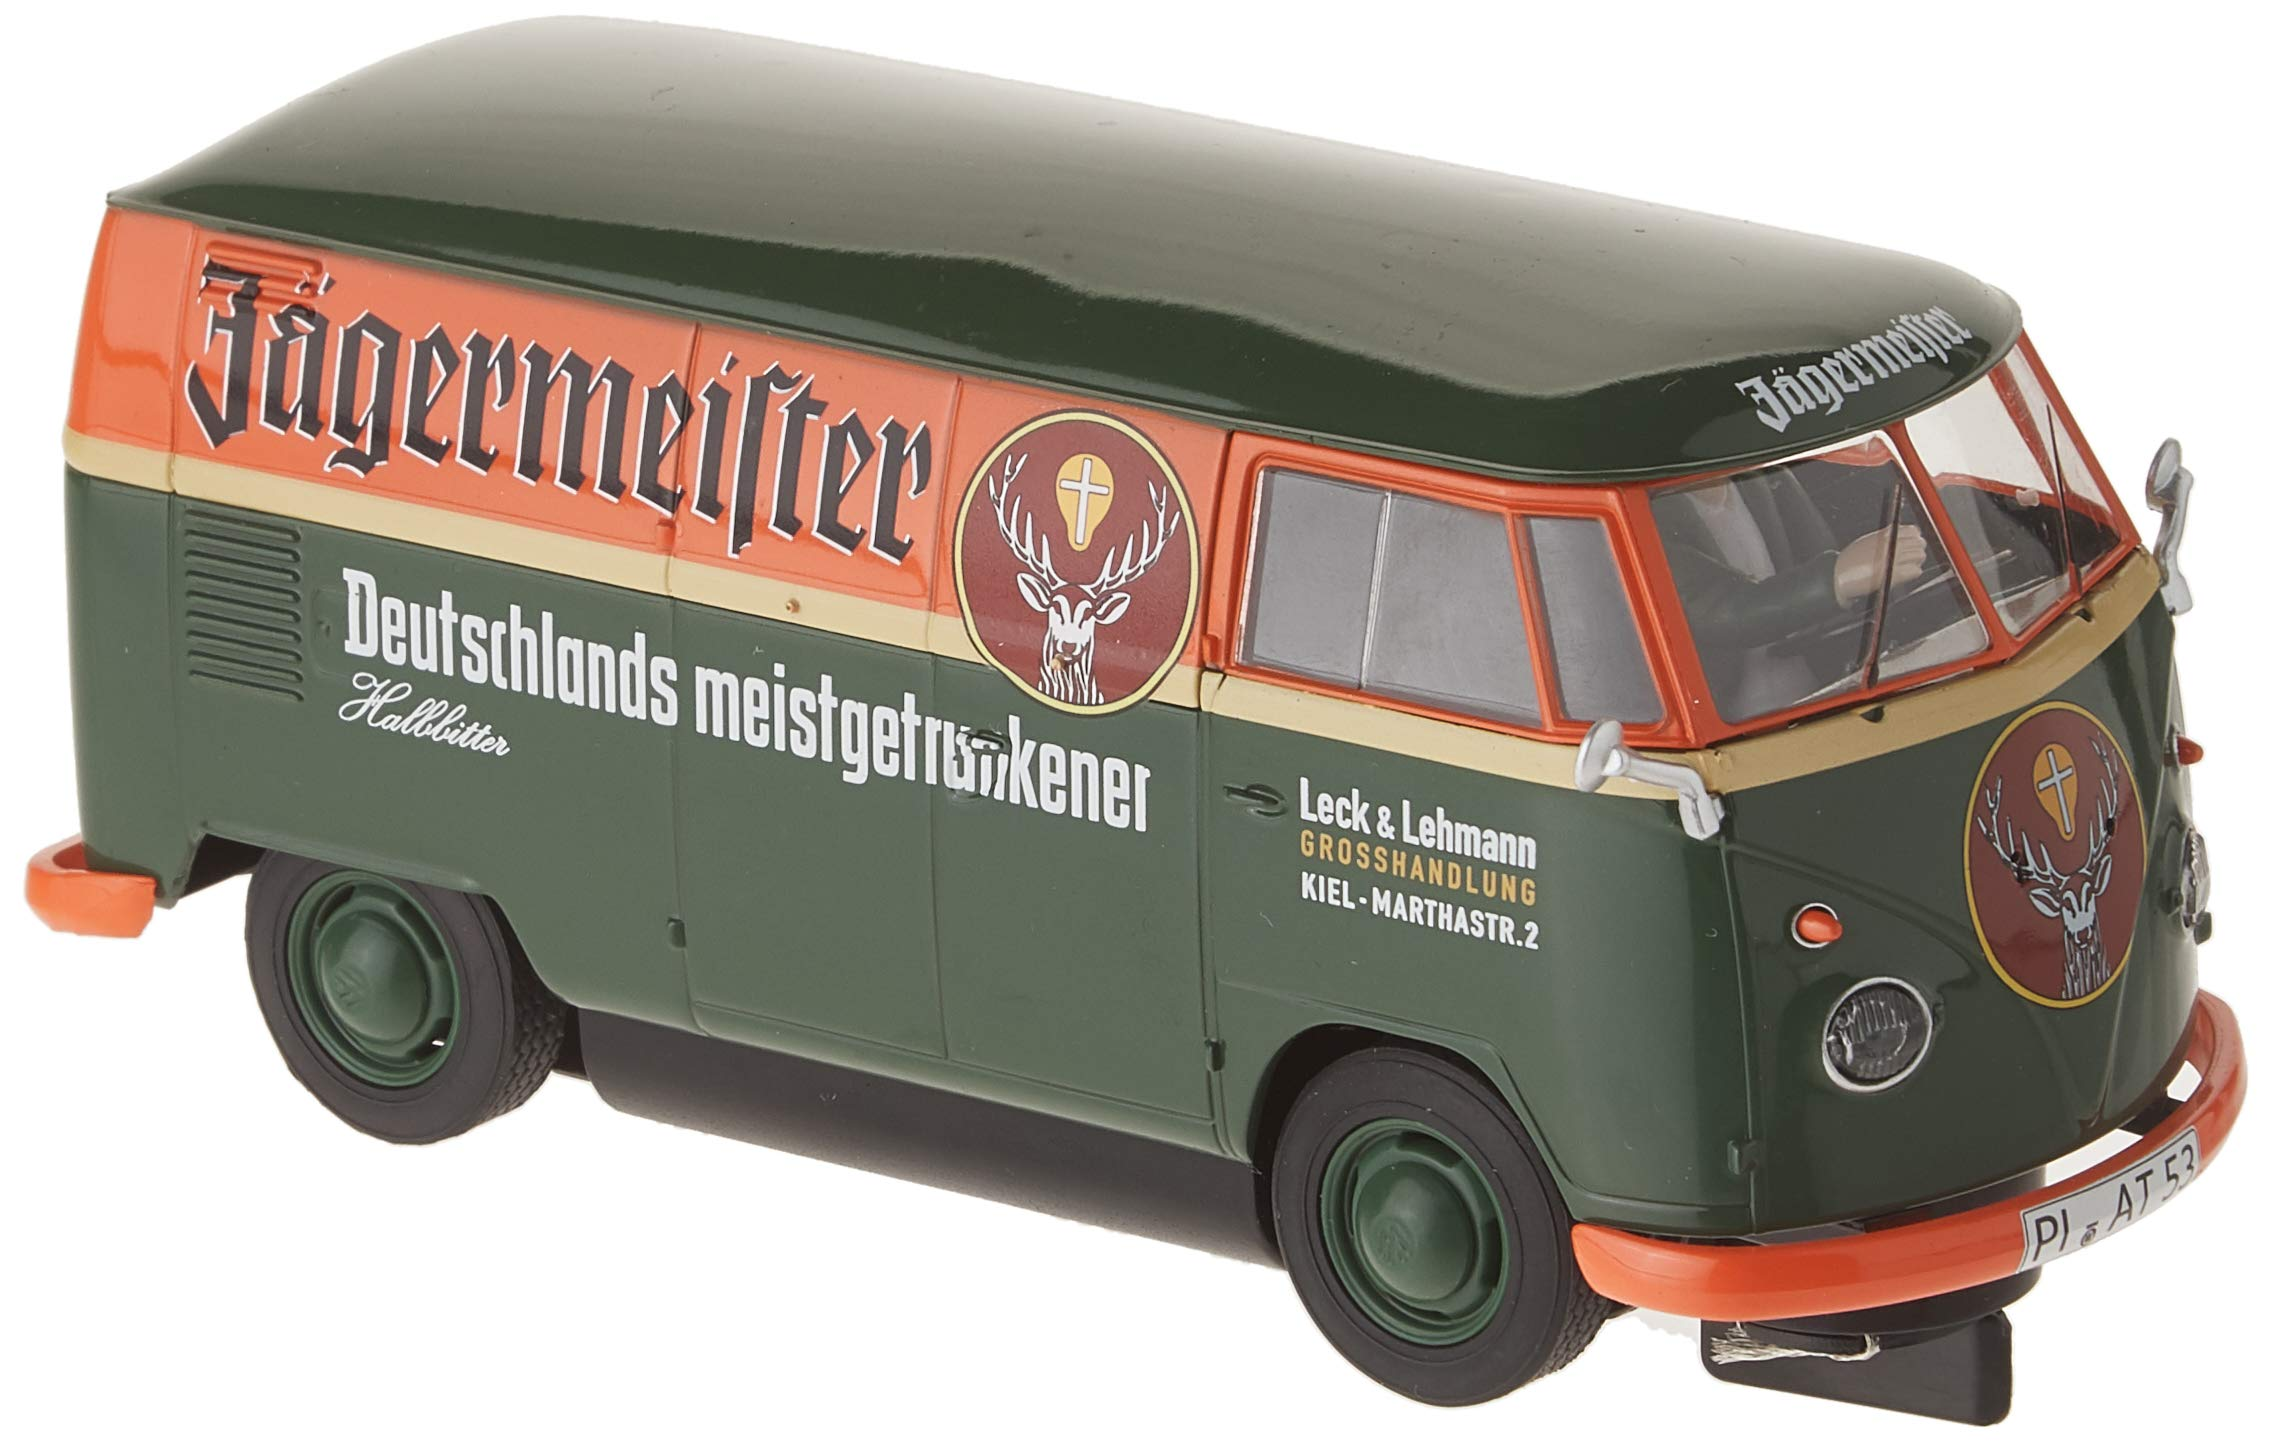 Scalextric Volkswagen Jagermeister Panelvan 1:32 Slot Race Car C3938 by Scalextric (Image #1)